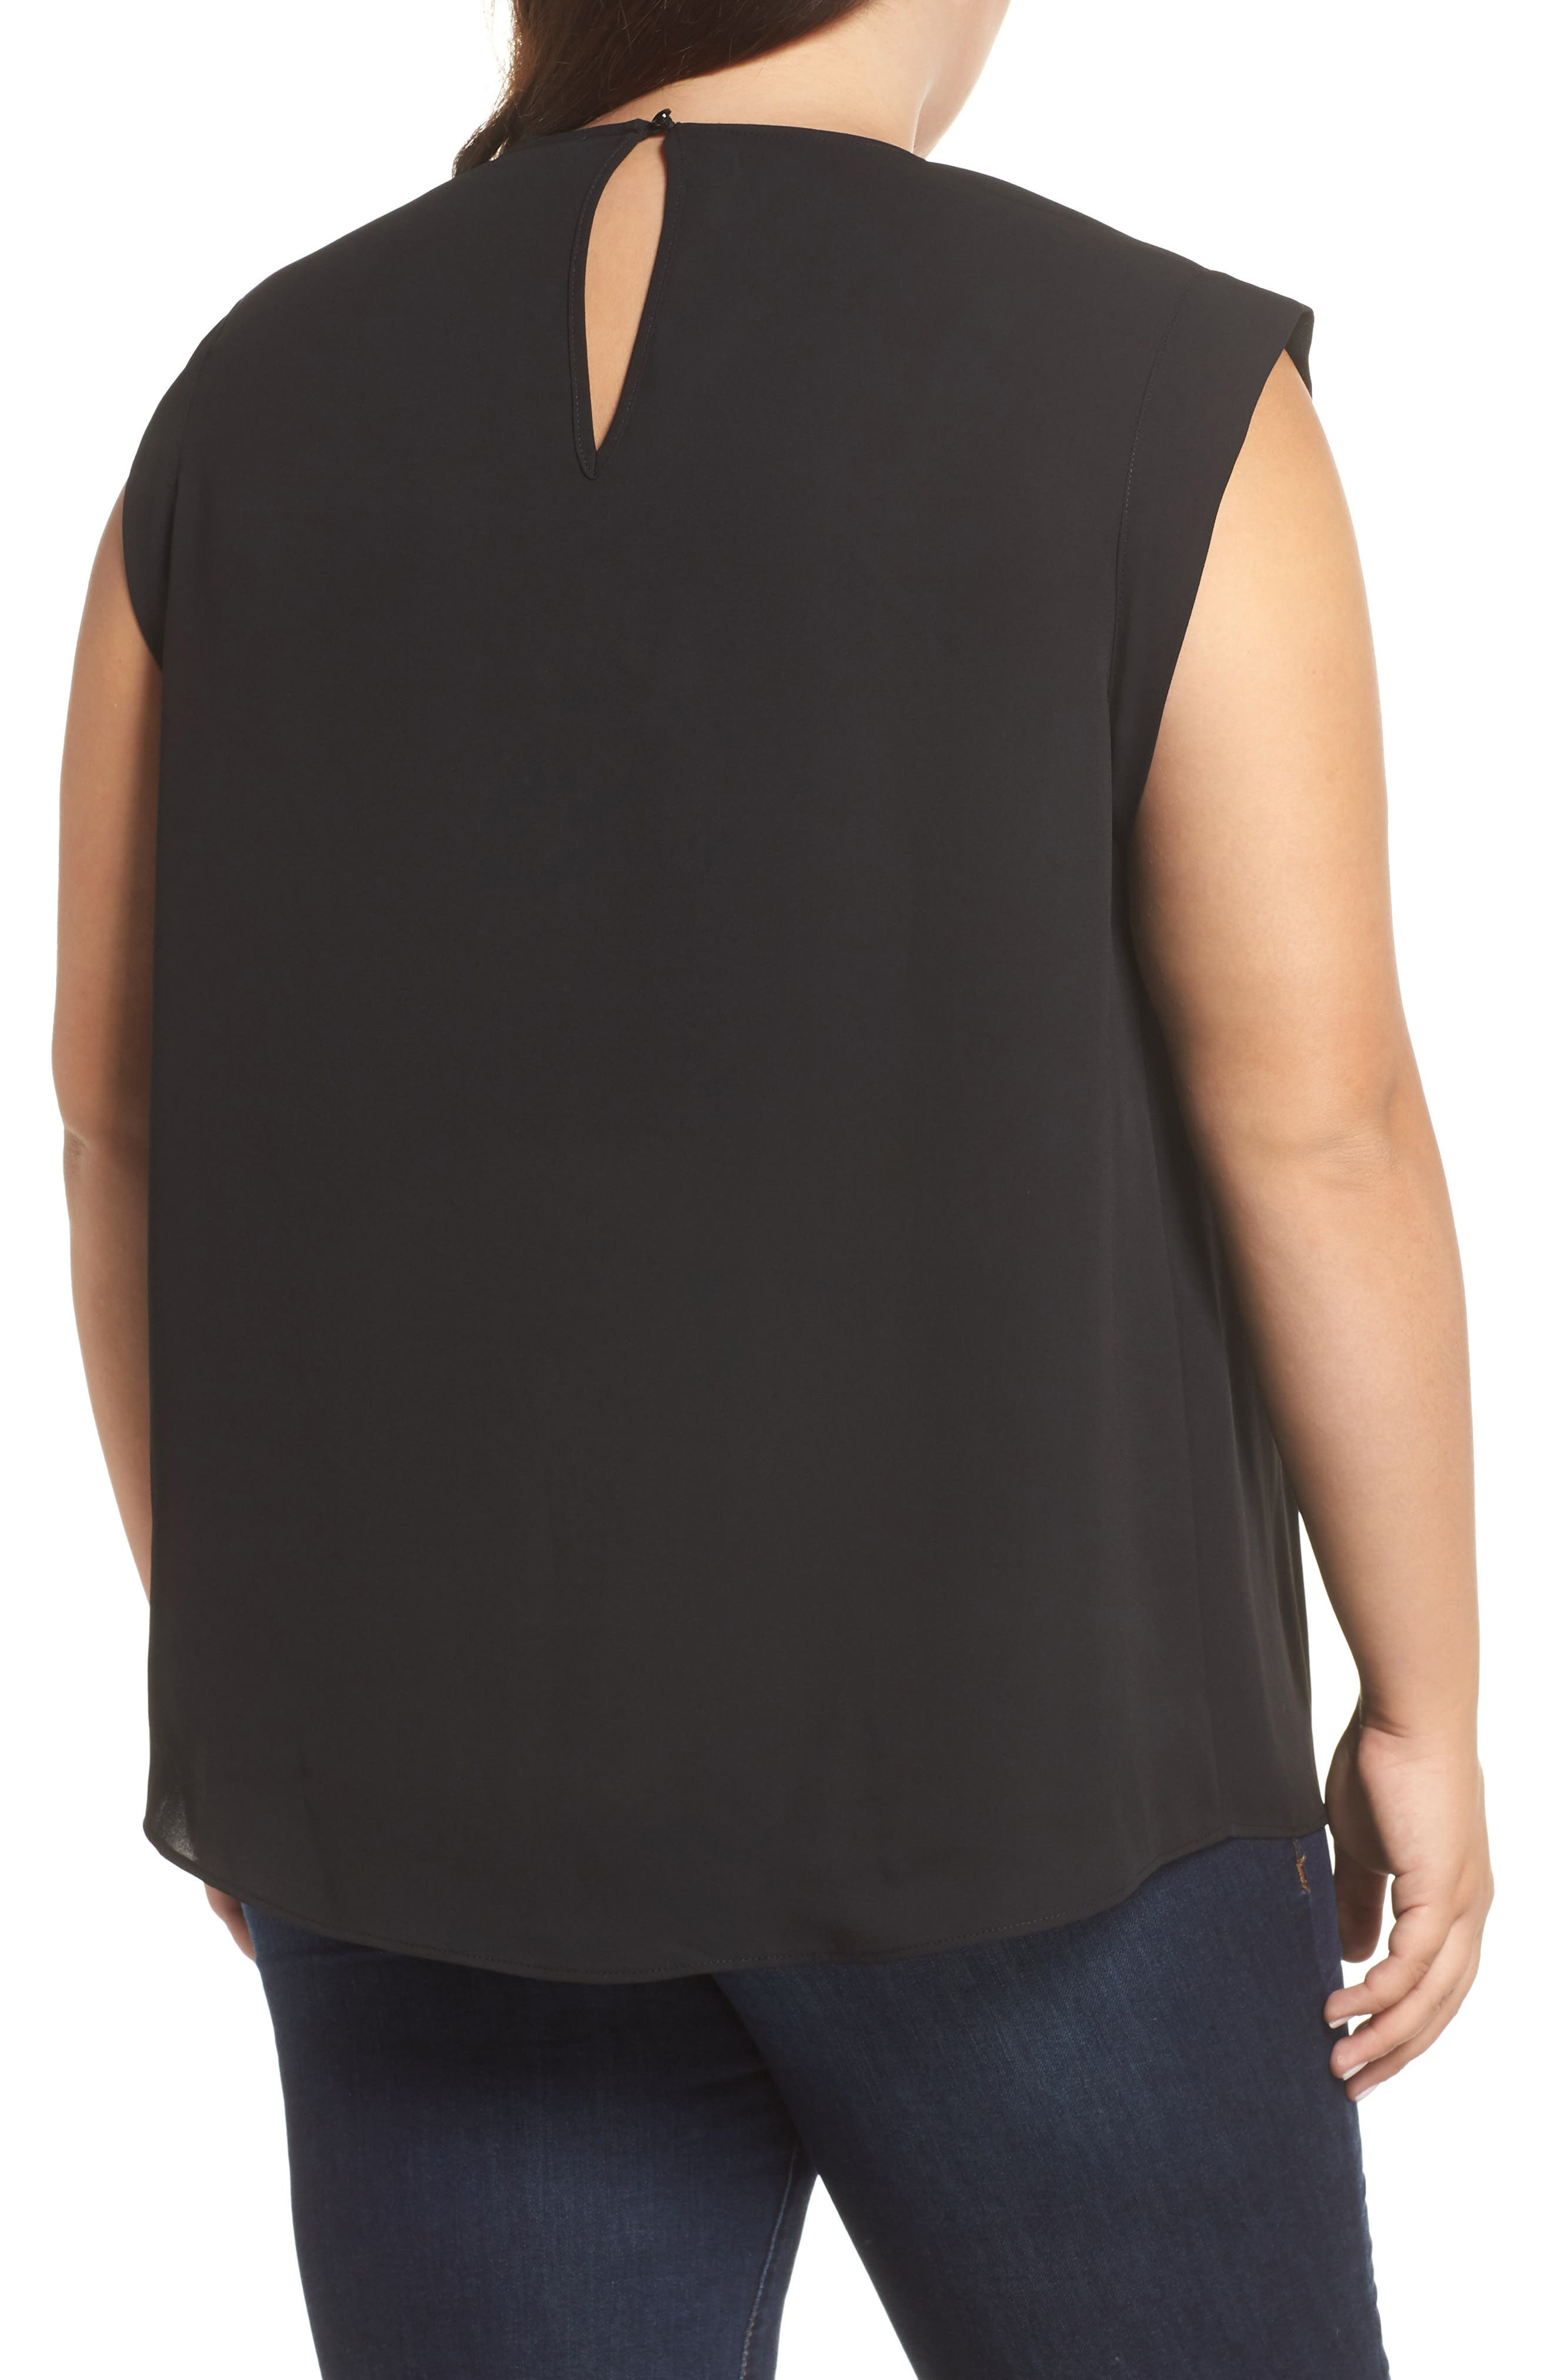 &.LAYERED, Scallop Trim Blouse, Alternate thumbnail 2, color, BLACK